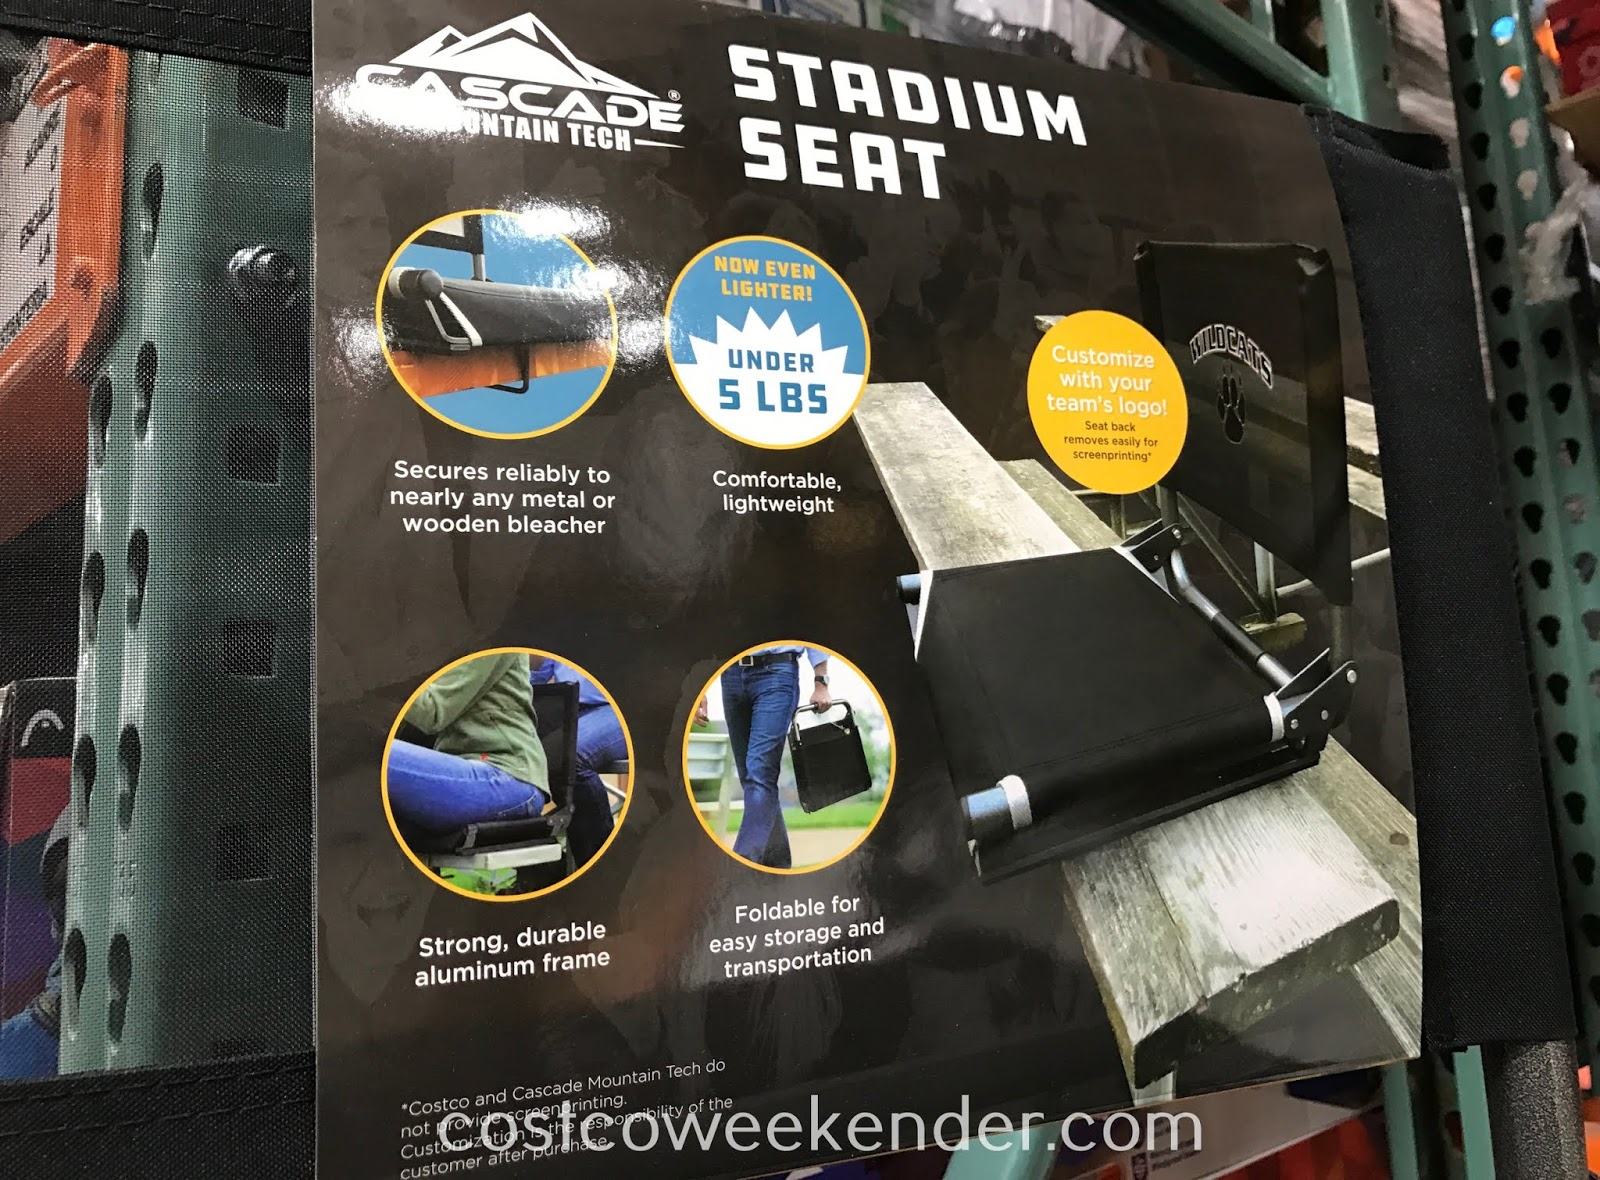 Cascade Mountain Tech Stadium Seat: great for any sports fan